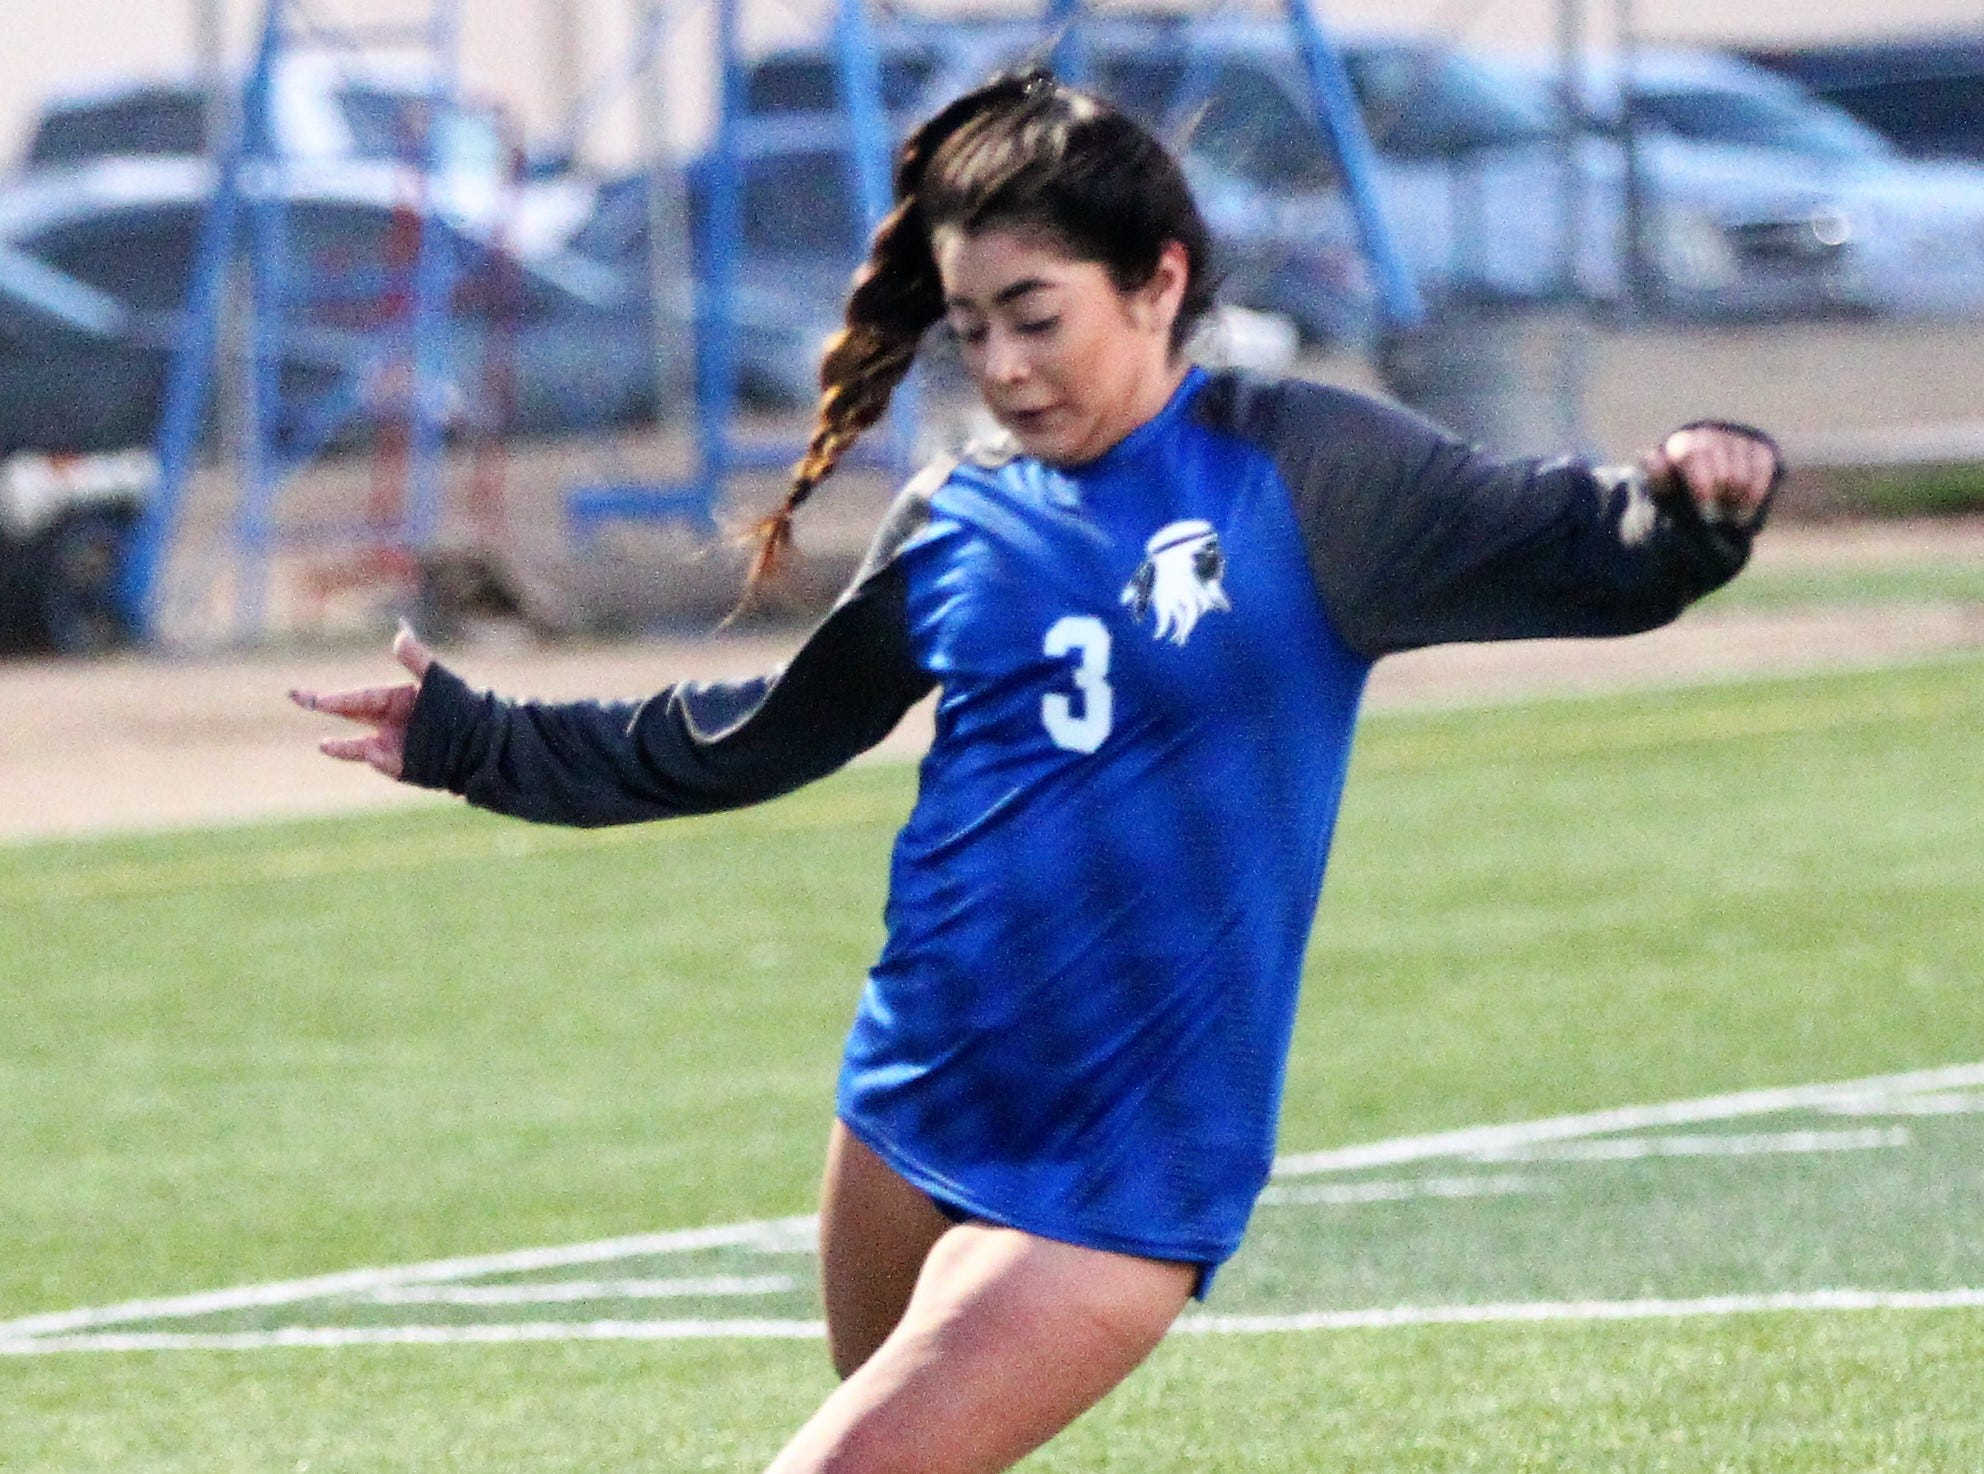 Lake View's Jilliyan Estrada puts a shot on goal in a District 4-4A soccer match against Snyder at Old Bobcat Stadium on Tuesday, March 5, 2019.